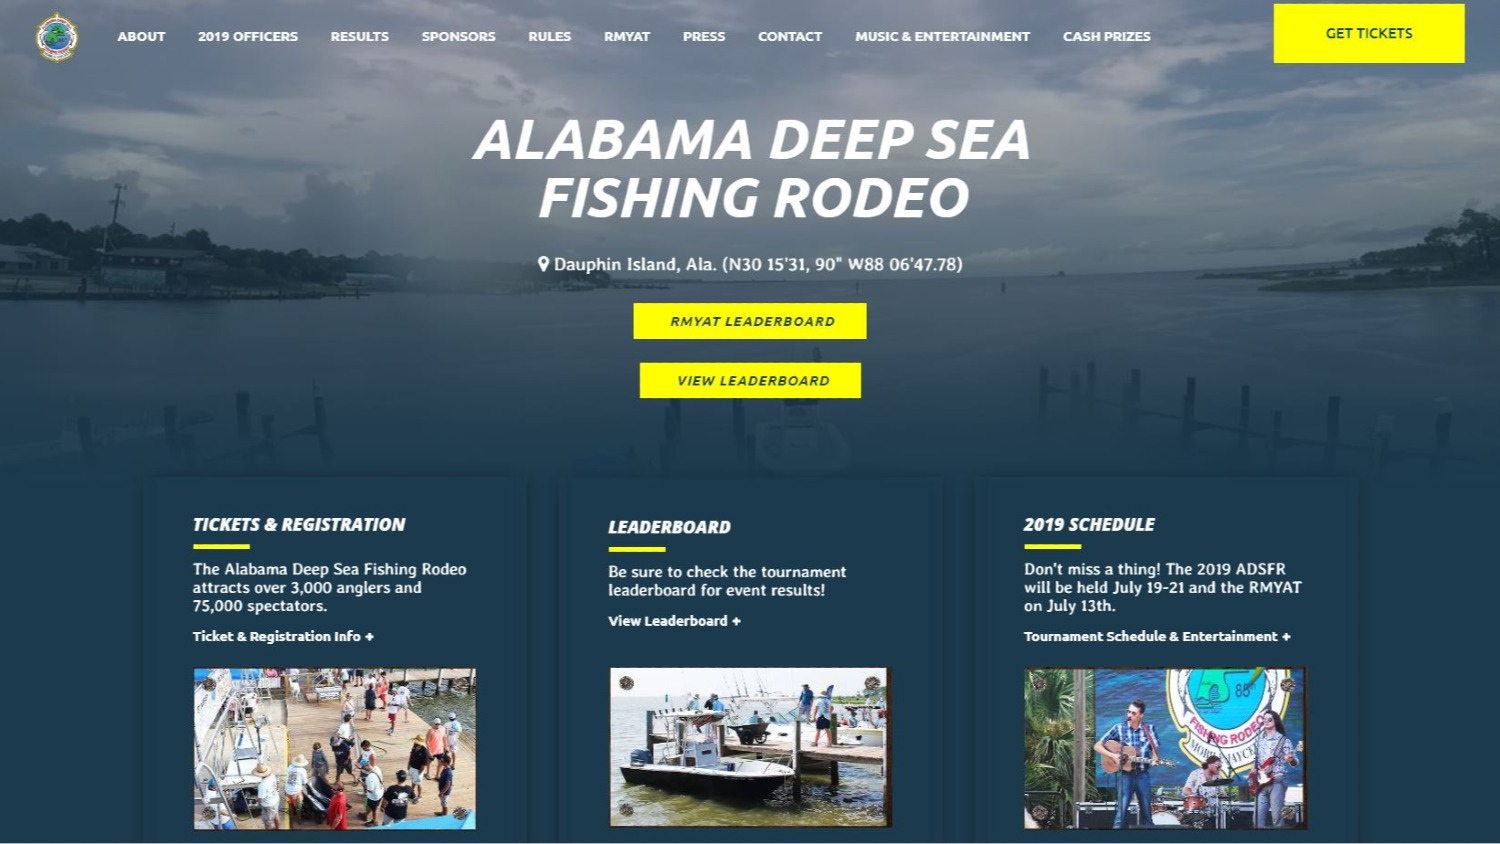 Alabama Deep Sea Fishing Rodeo